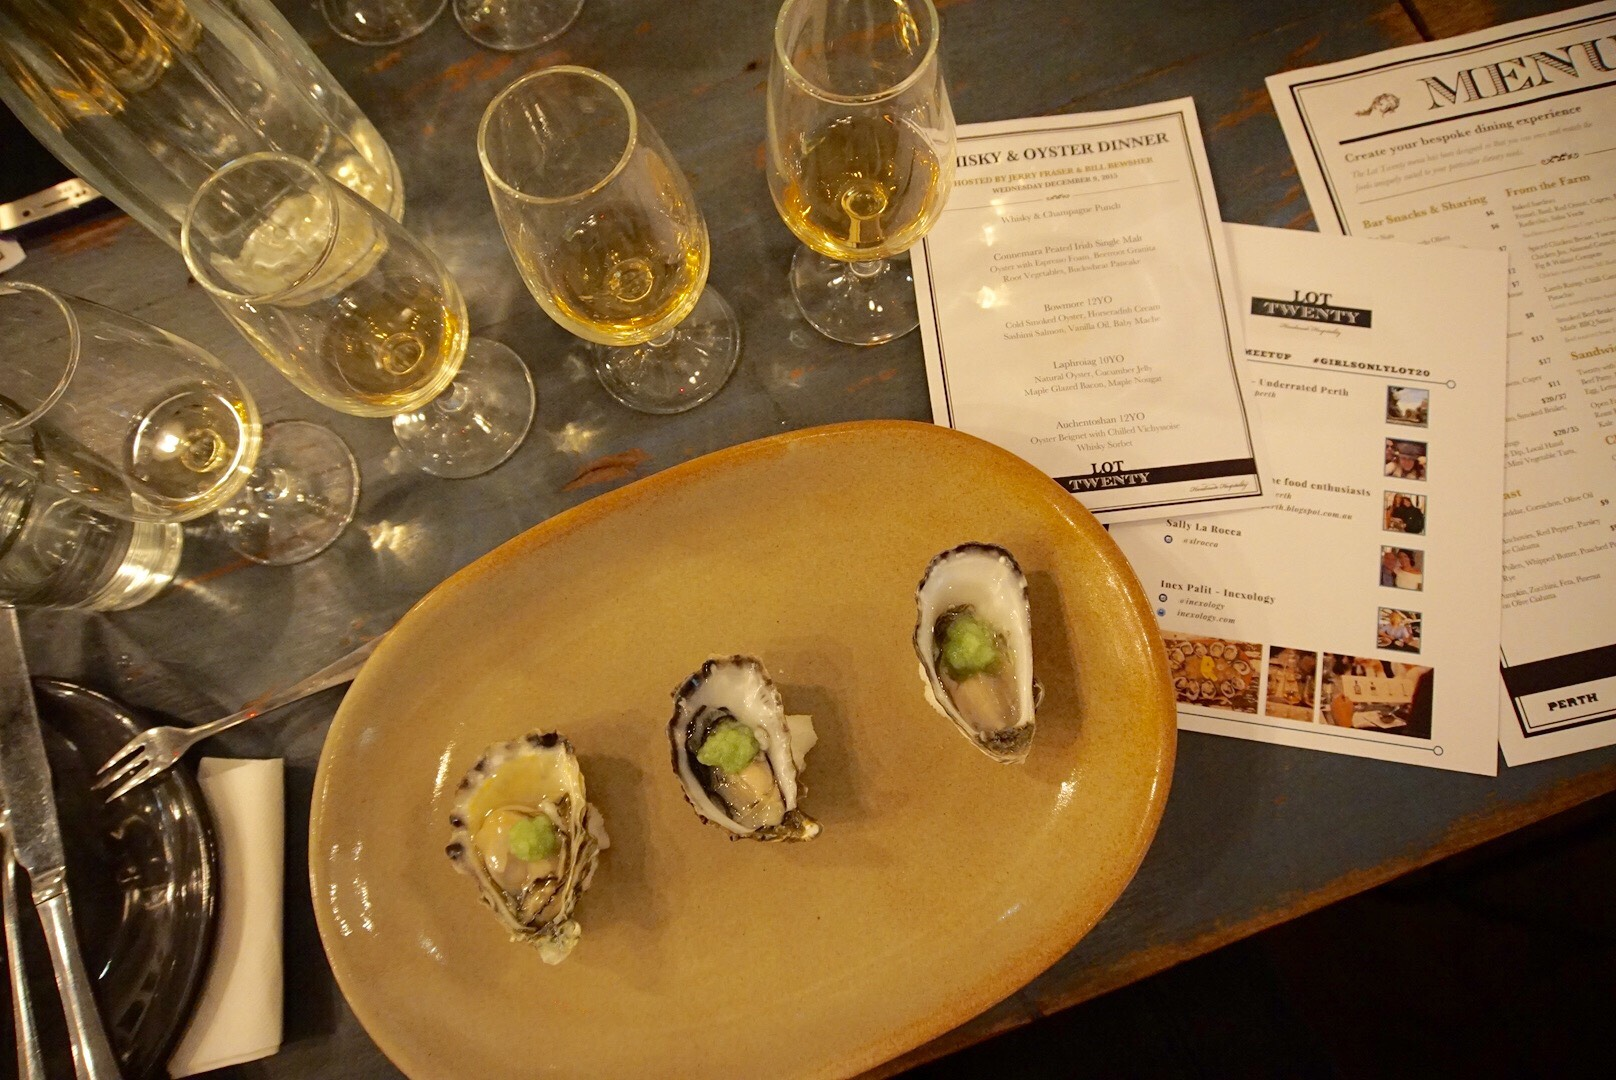 Natural Oysters with fresh cucumber jelly